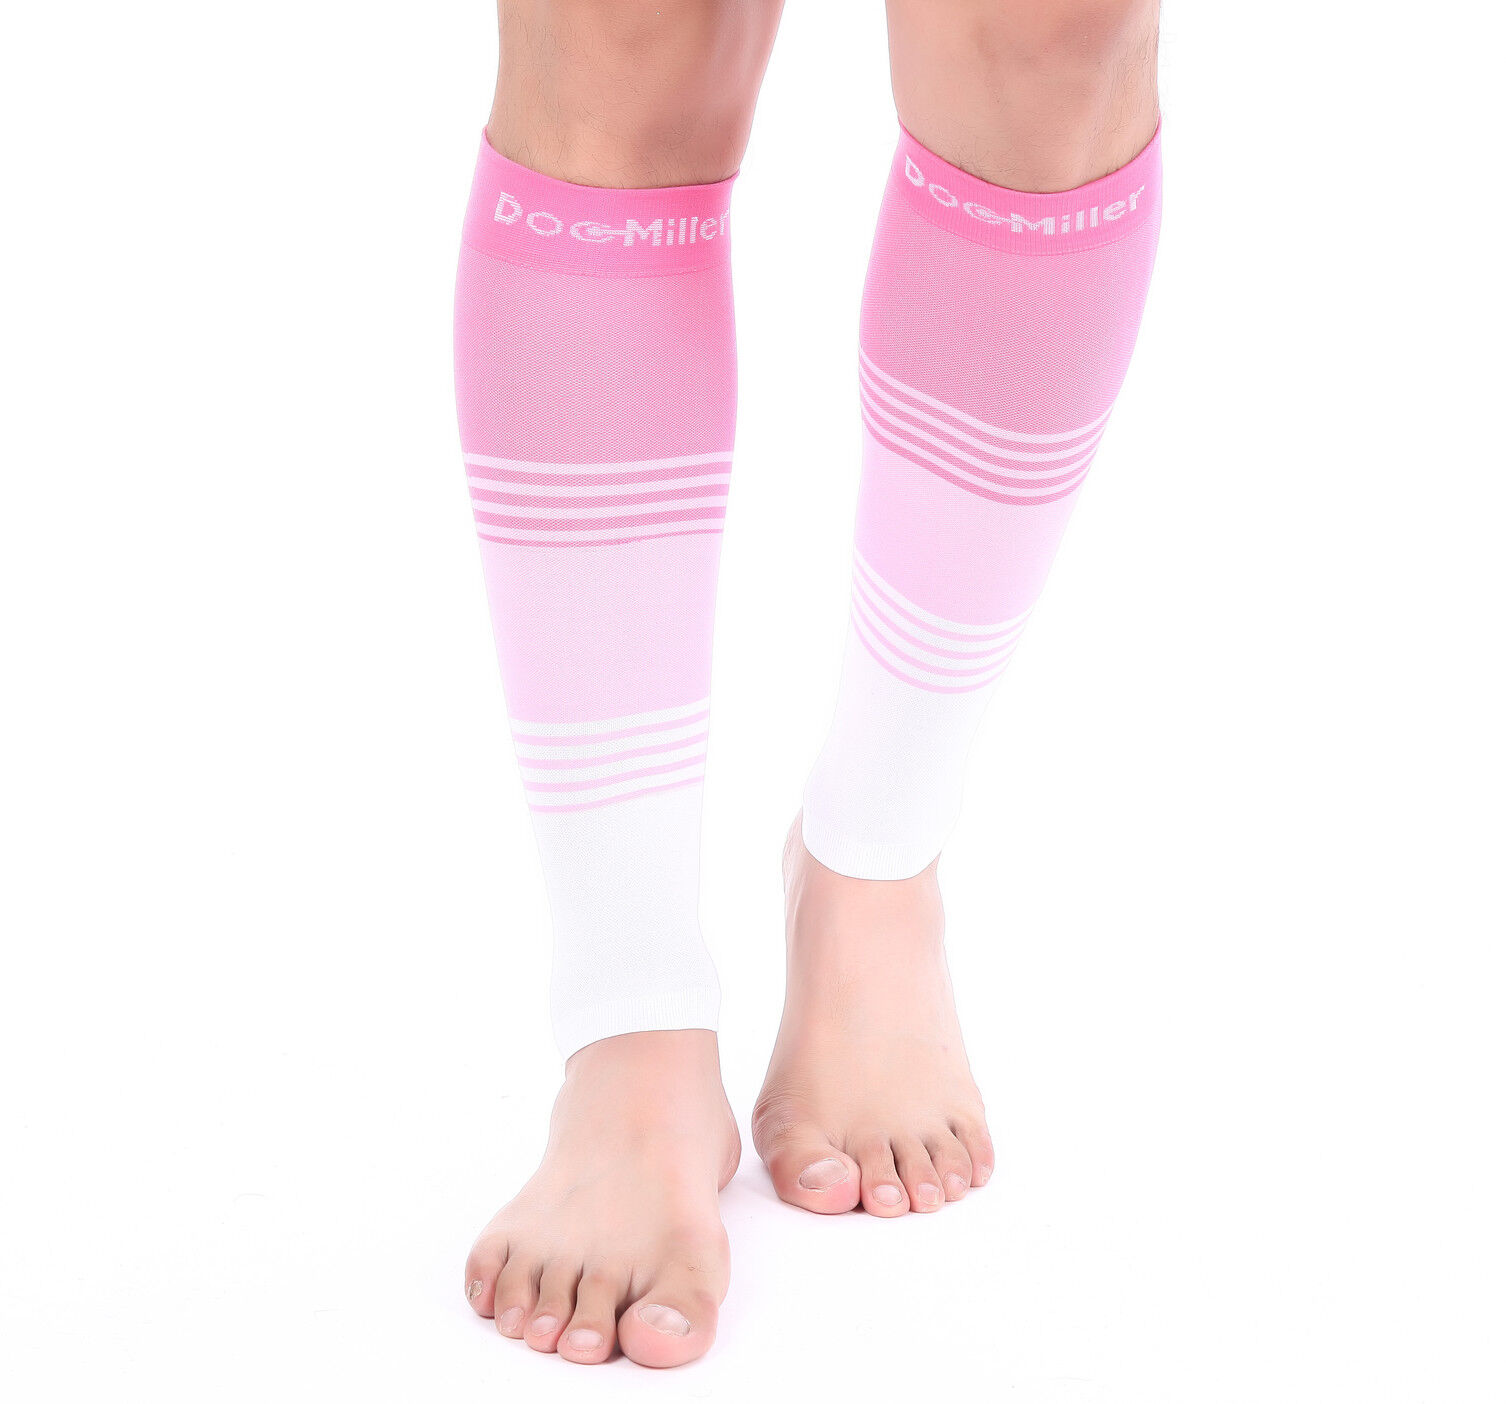 2547fb3a792 Doc Miller Calf Compression Sleeve 1 Pair 20-30 mmHg Varicose Veins  PINK PINK WHITE